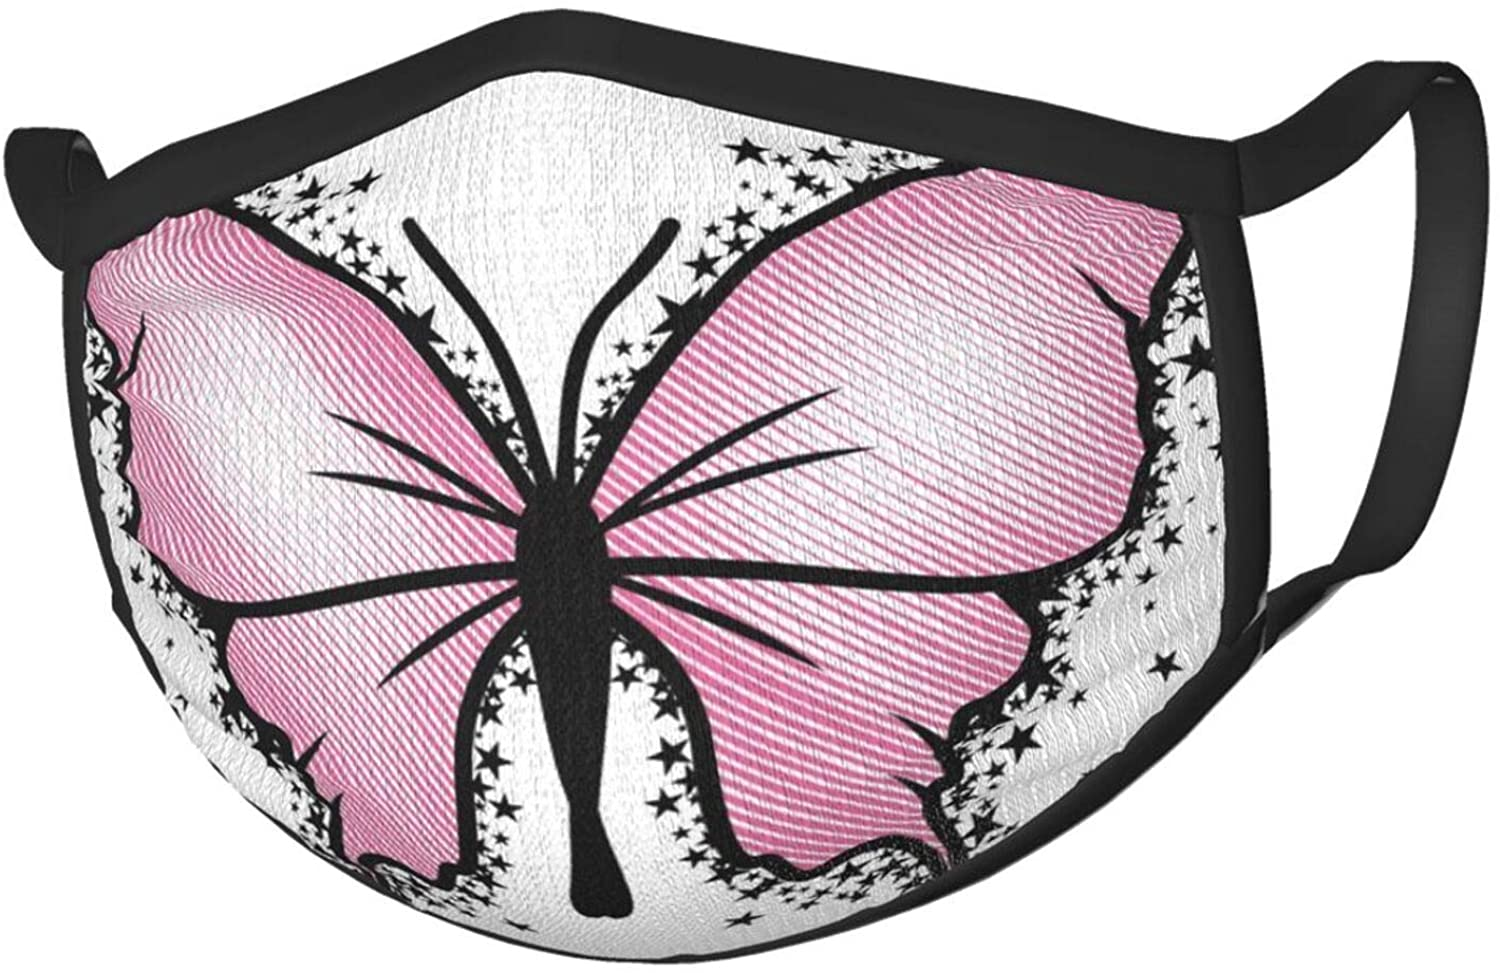 Butterfly Bow Star Face Mask Fashion Reusable Washable Unisex Mouth Cover Dustproof Windproof Protective Protection Face-Macks